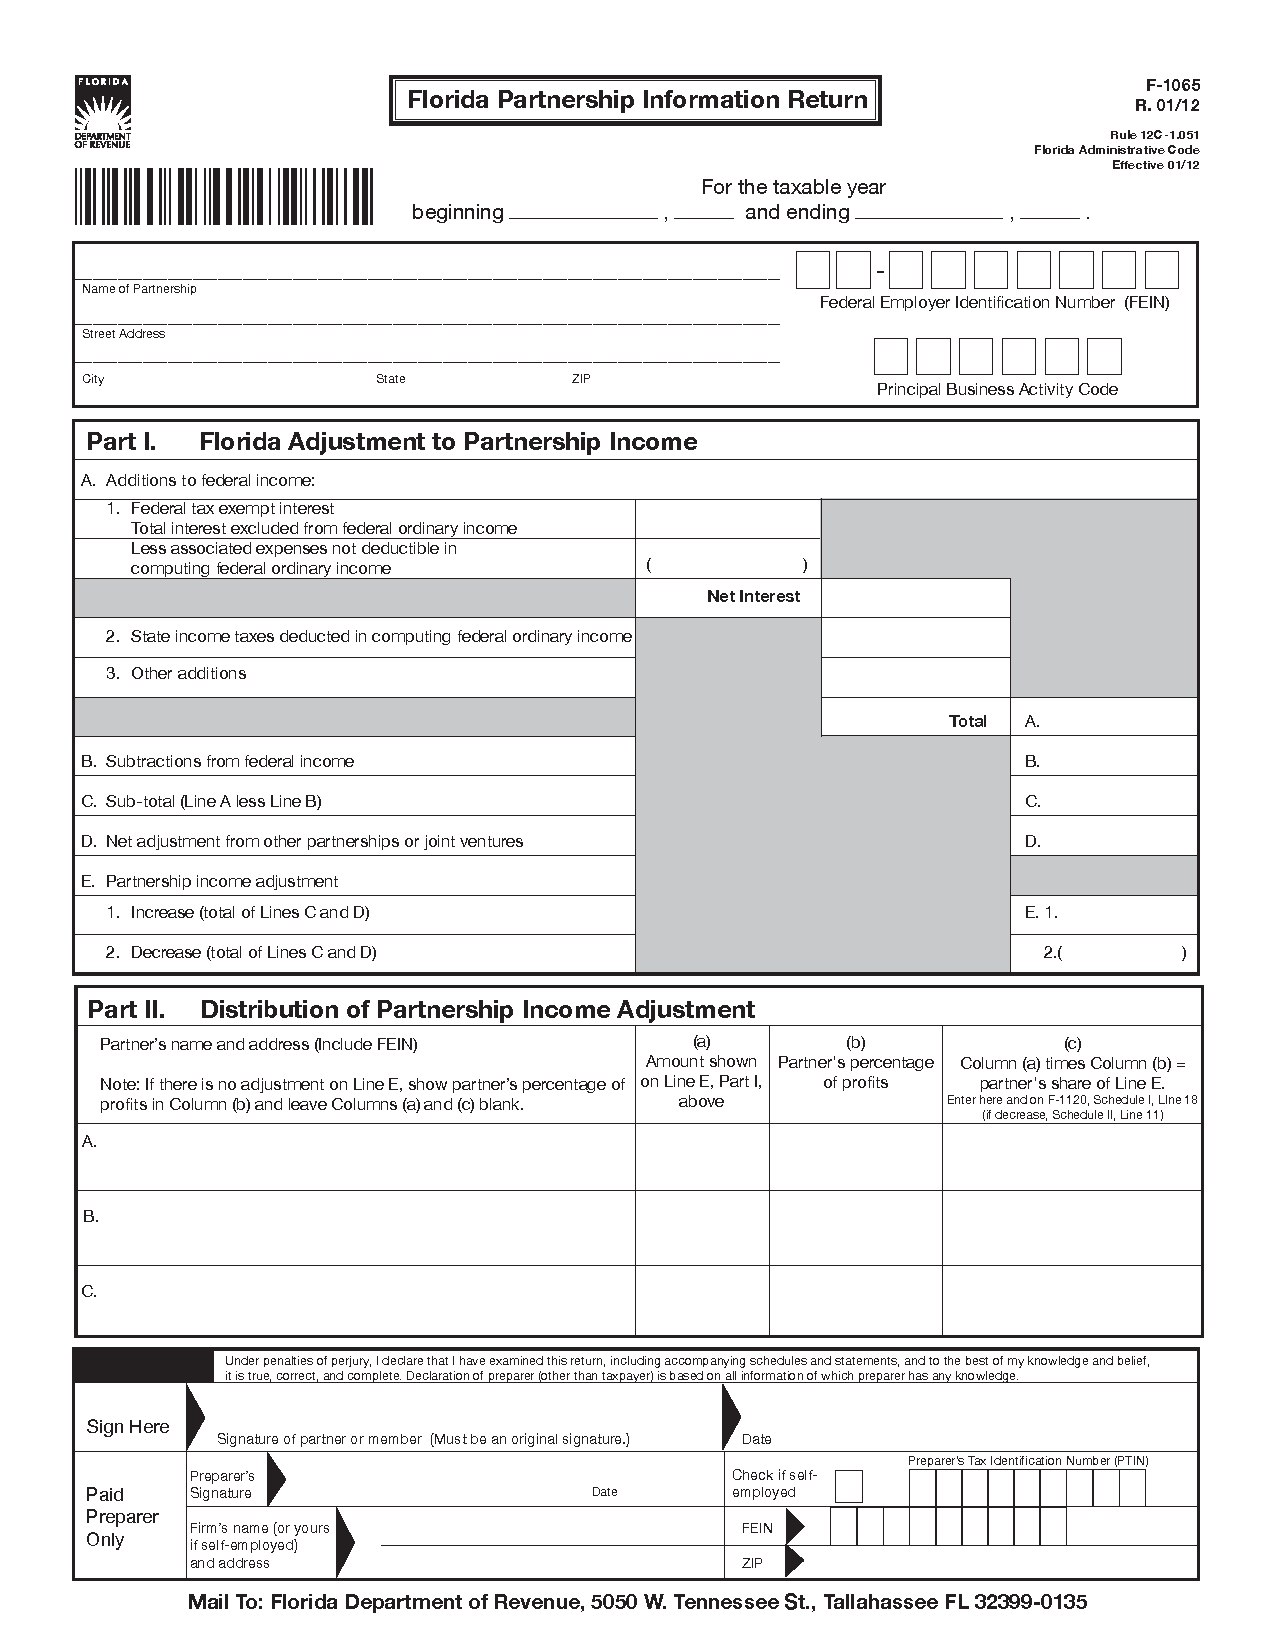 Form f 1065 florida partnership information return with form f 1065 florida partnership information return with instructions r0112 xflitez Choice Image